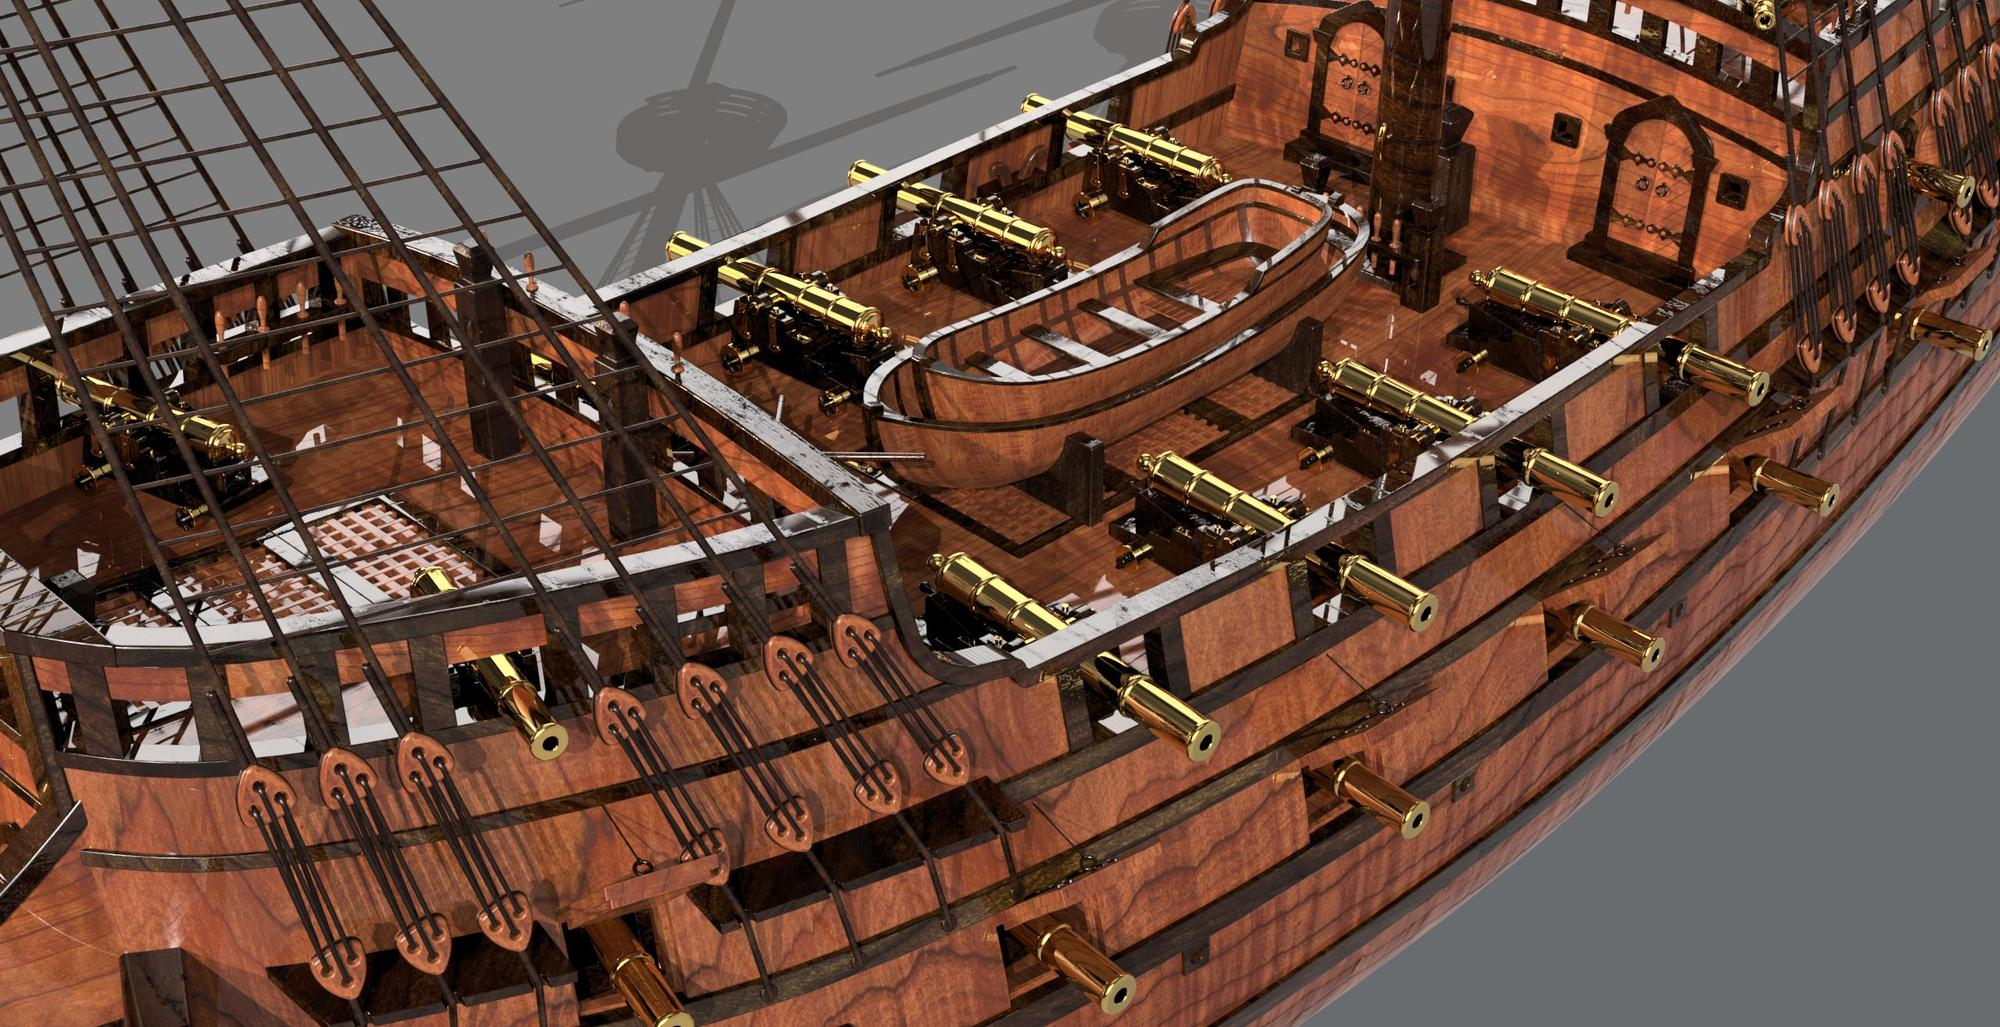 Galleon 'Revenge' 1577